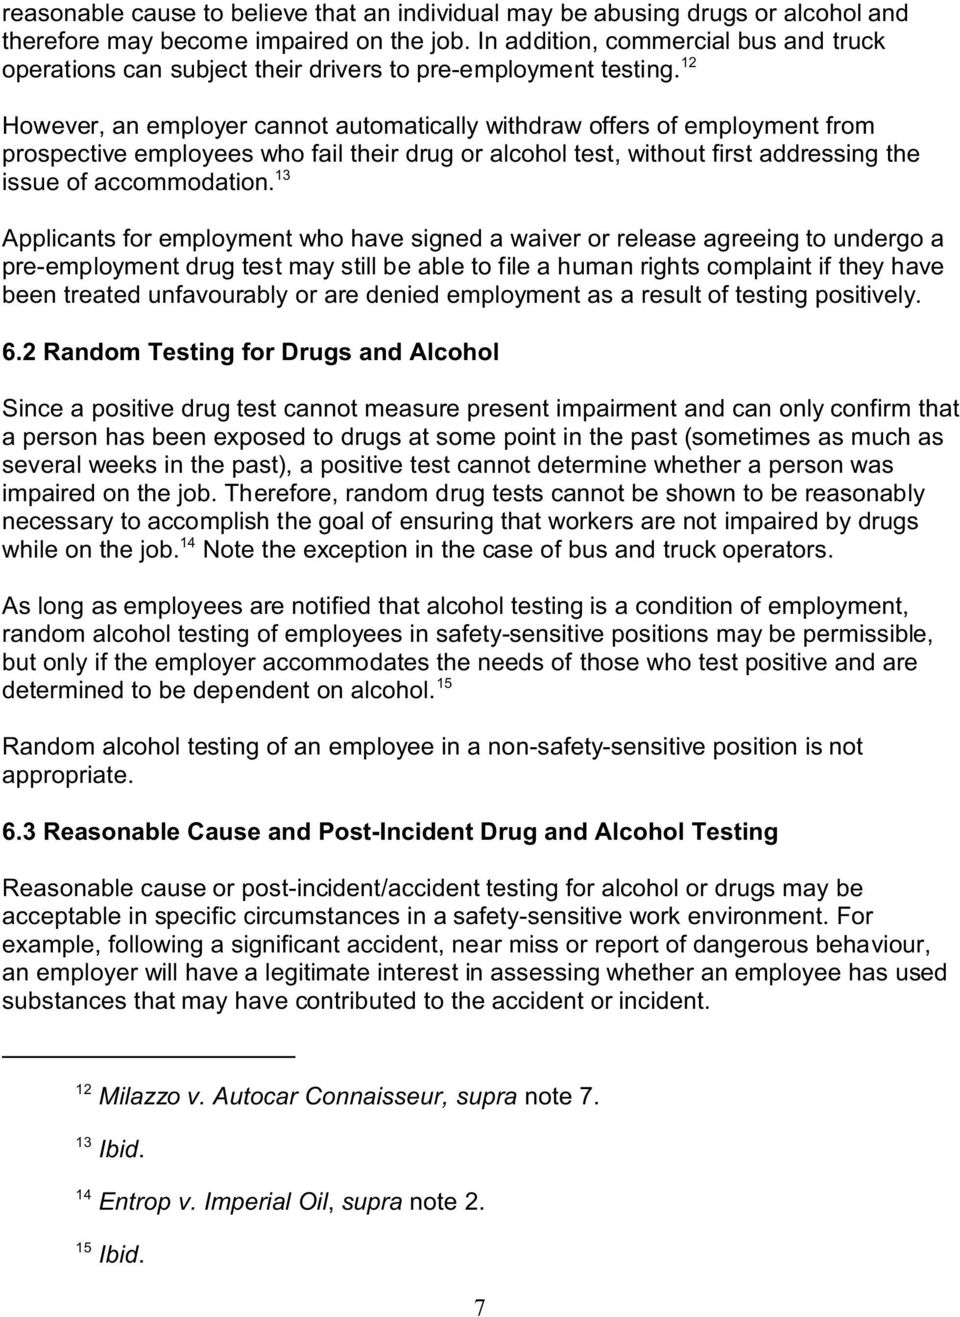 12 However, an employer cannot automatically withdraw offers of employment from prospective employees who fail their drug or alcohol test, without first addressing the issue of accommodation.